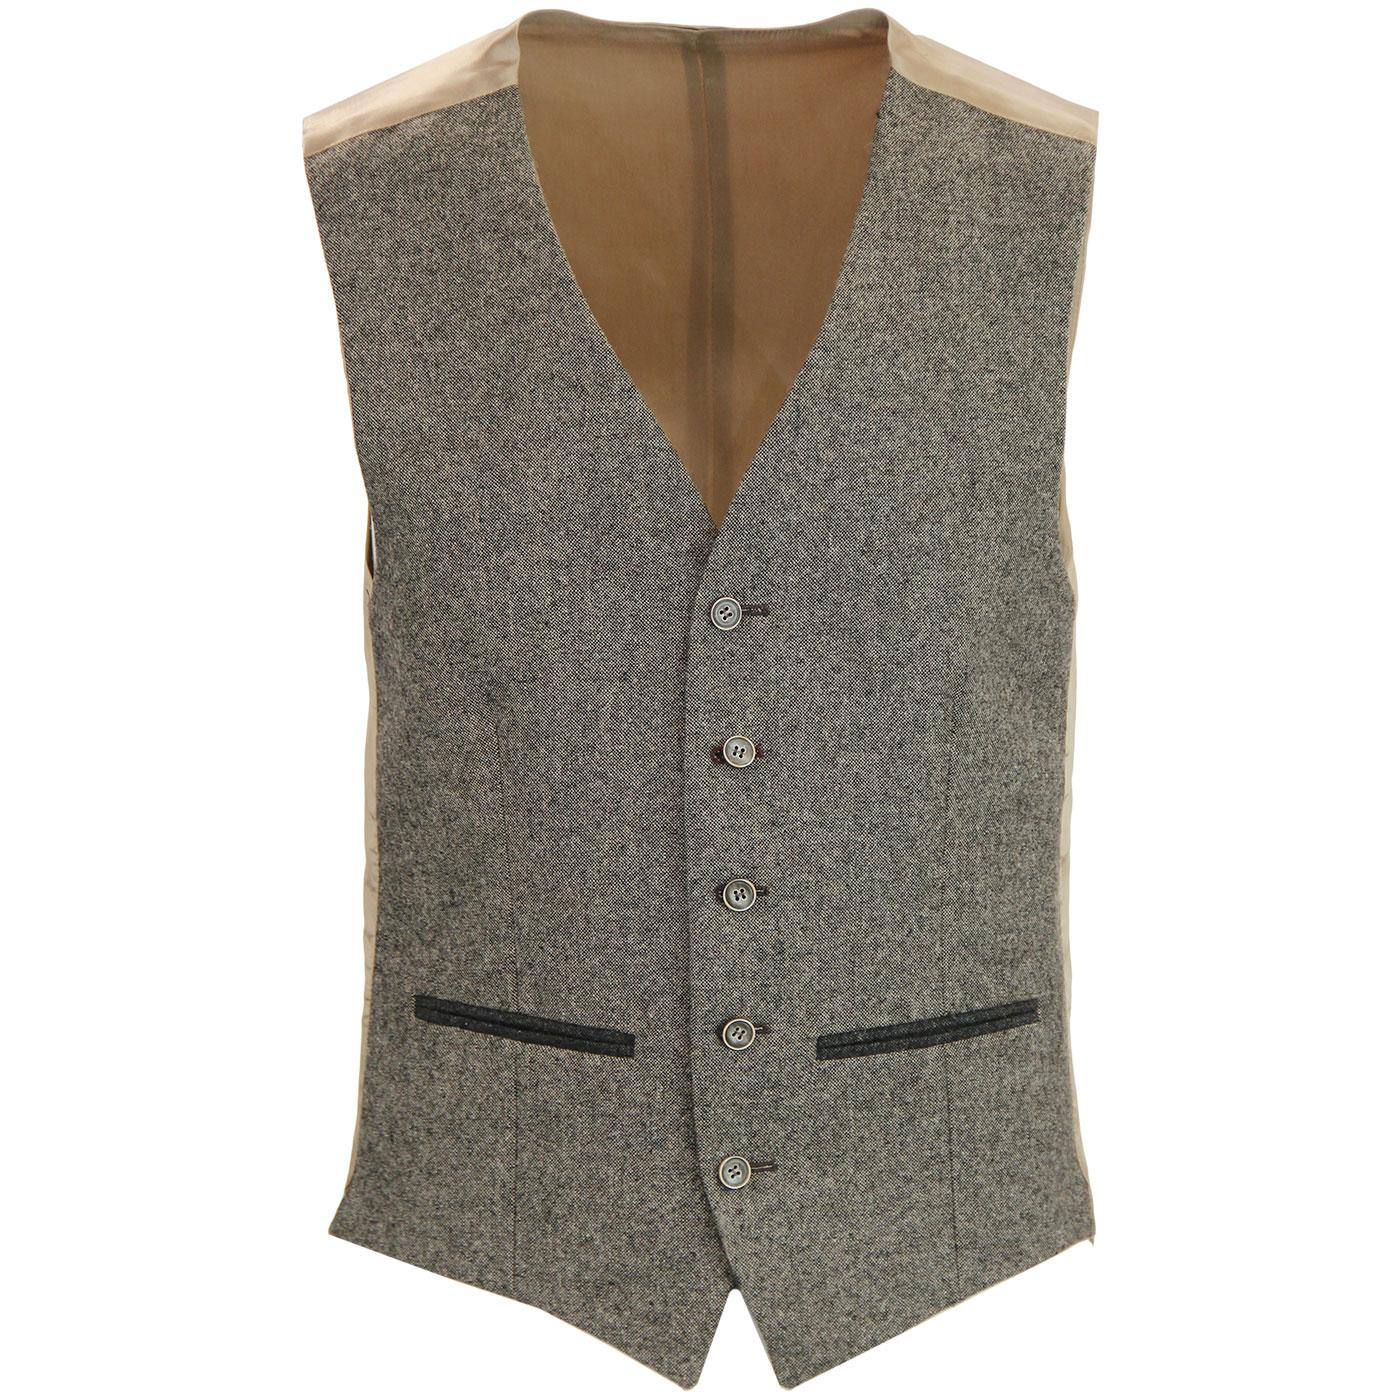 Men's Mod 5 Button V-Neck Taupe Donegal Waistcoat